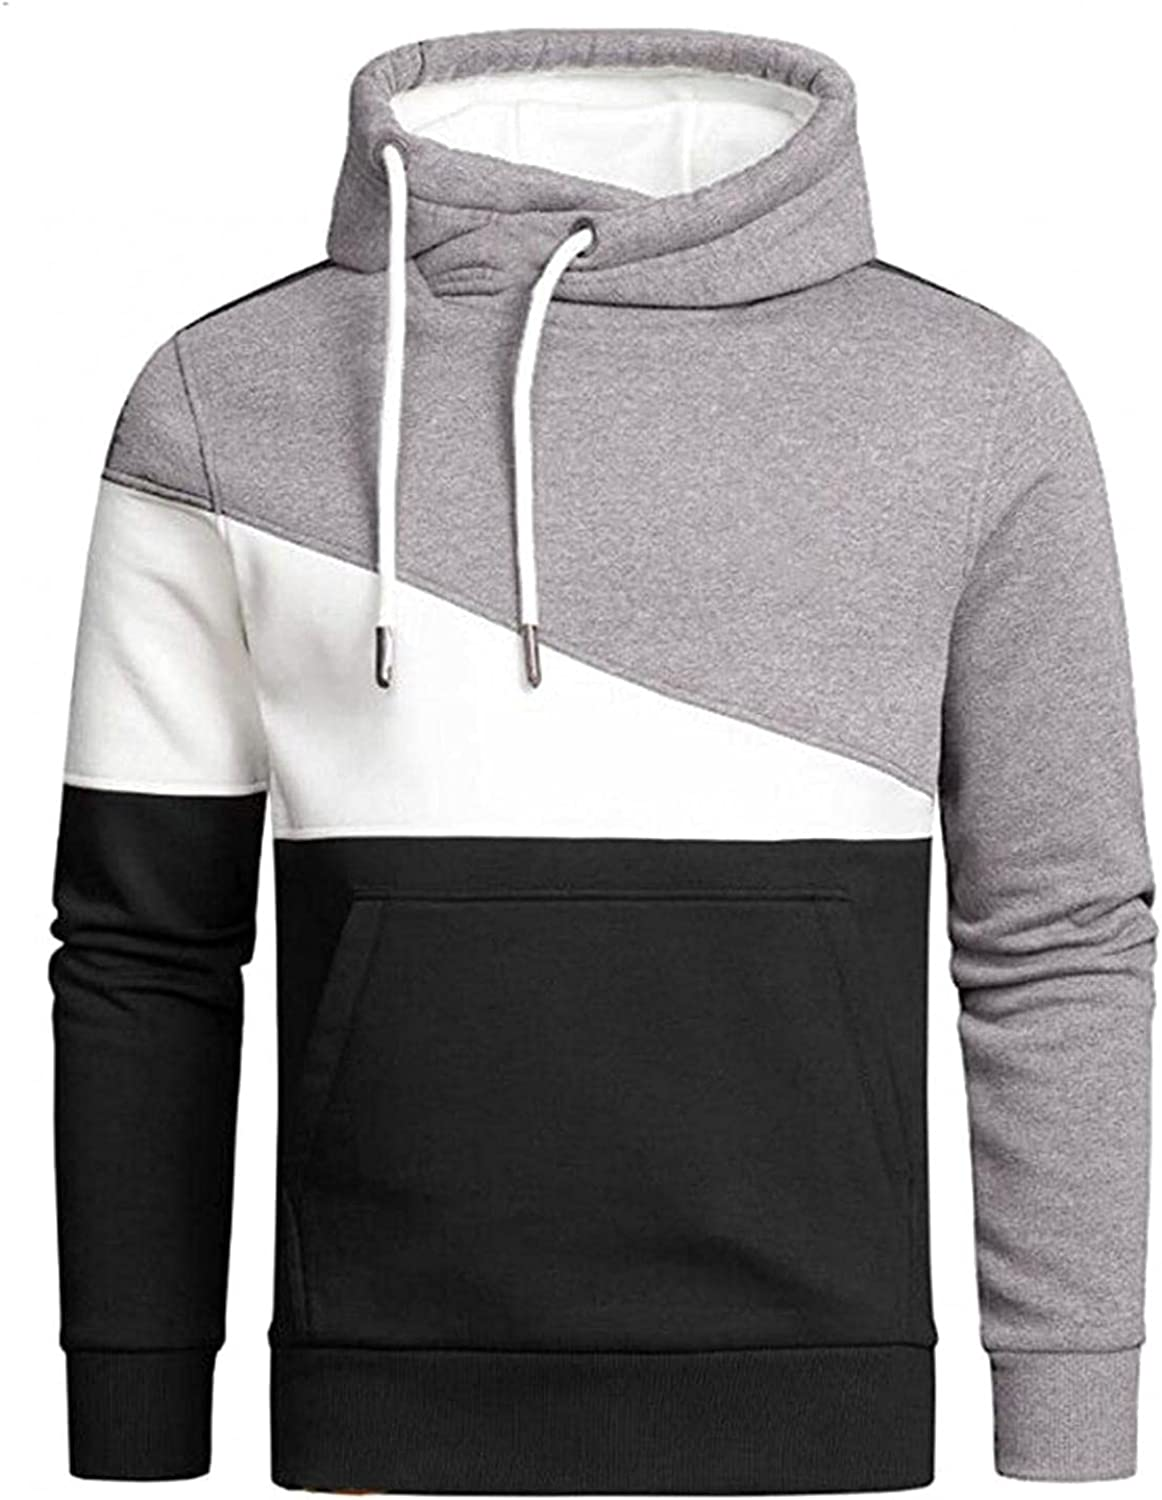 Qsctys Mens Sweatshirts Hoodies Casual Patchwork Color Front Pocket Sports Hooded Pullover Slim Crewneck Long Sleeve Outwear